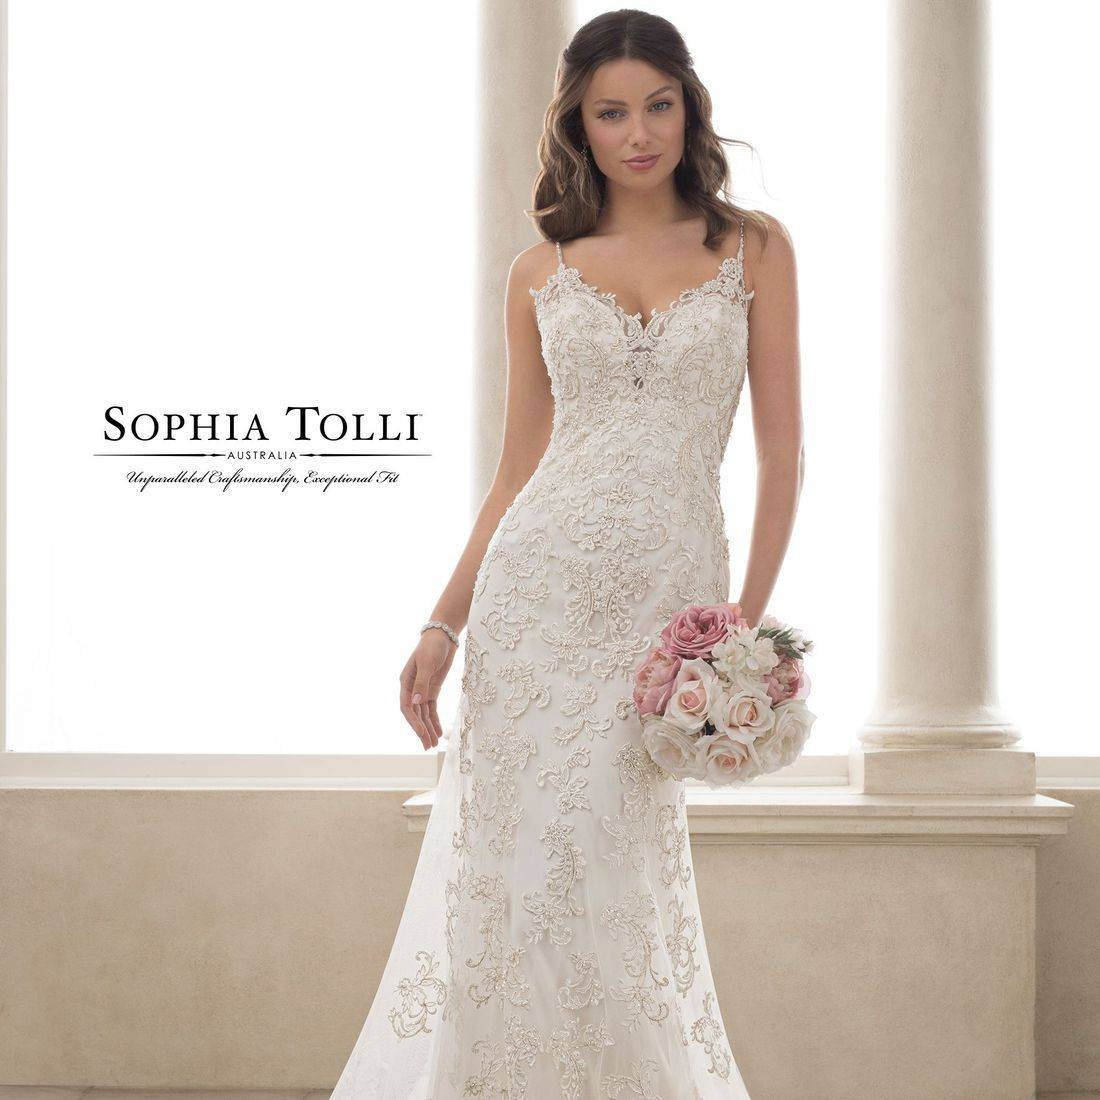 Fitted wedding dress, sophia tolli, sophia tolli wedding dress, spaghettin straps, straps, v neck, sweetheart neck, lace, plus size, deep v back, illusion,